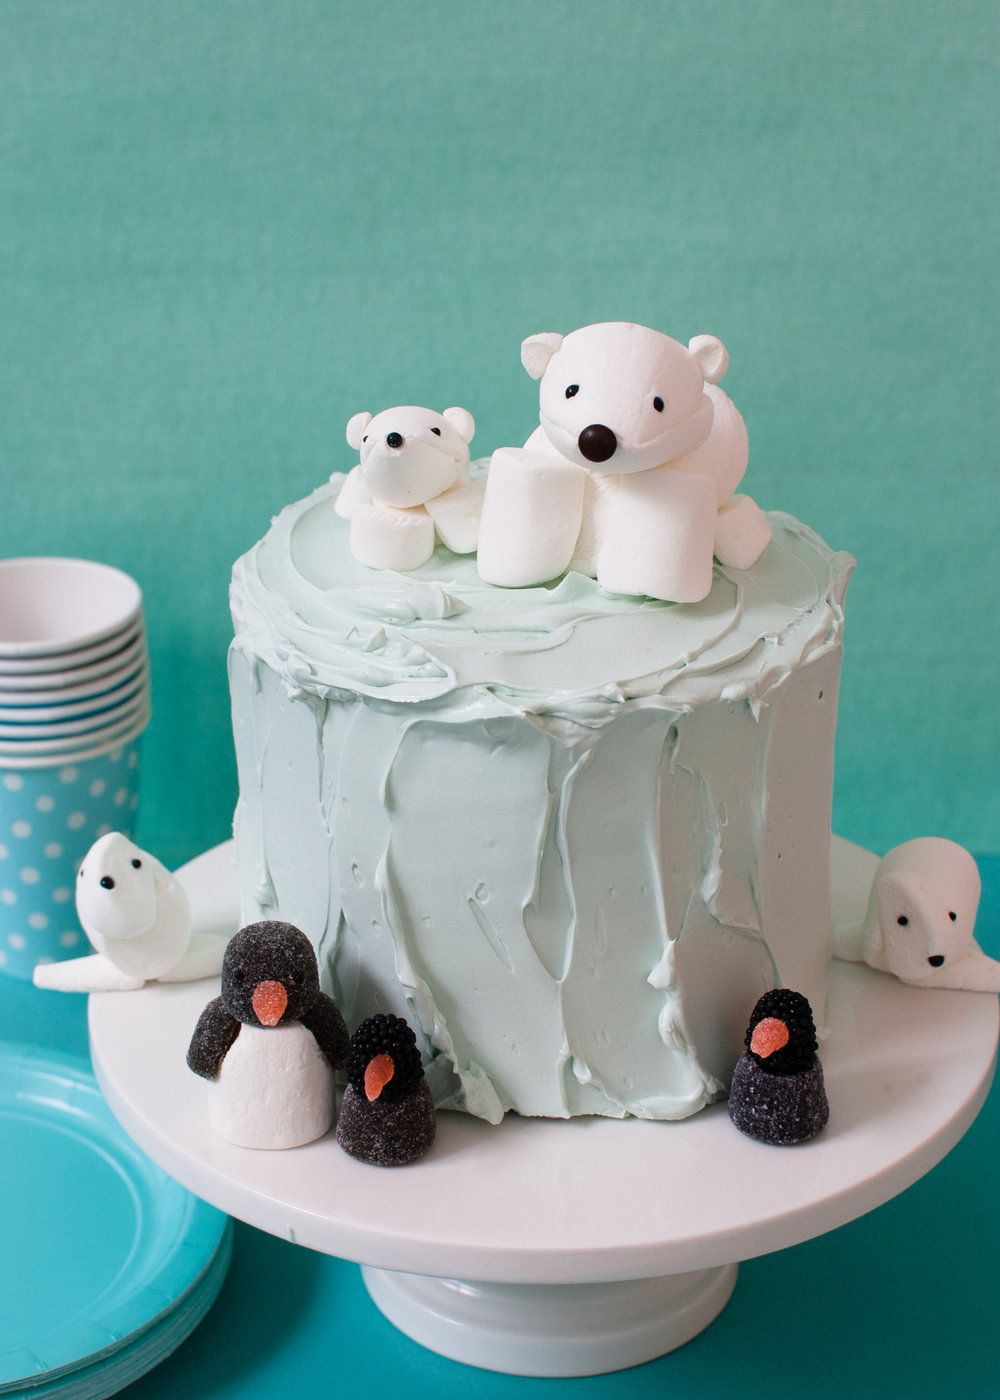 Cute Marshmallow Arctic Animals For A Winter Birthday Cake Sweet